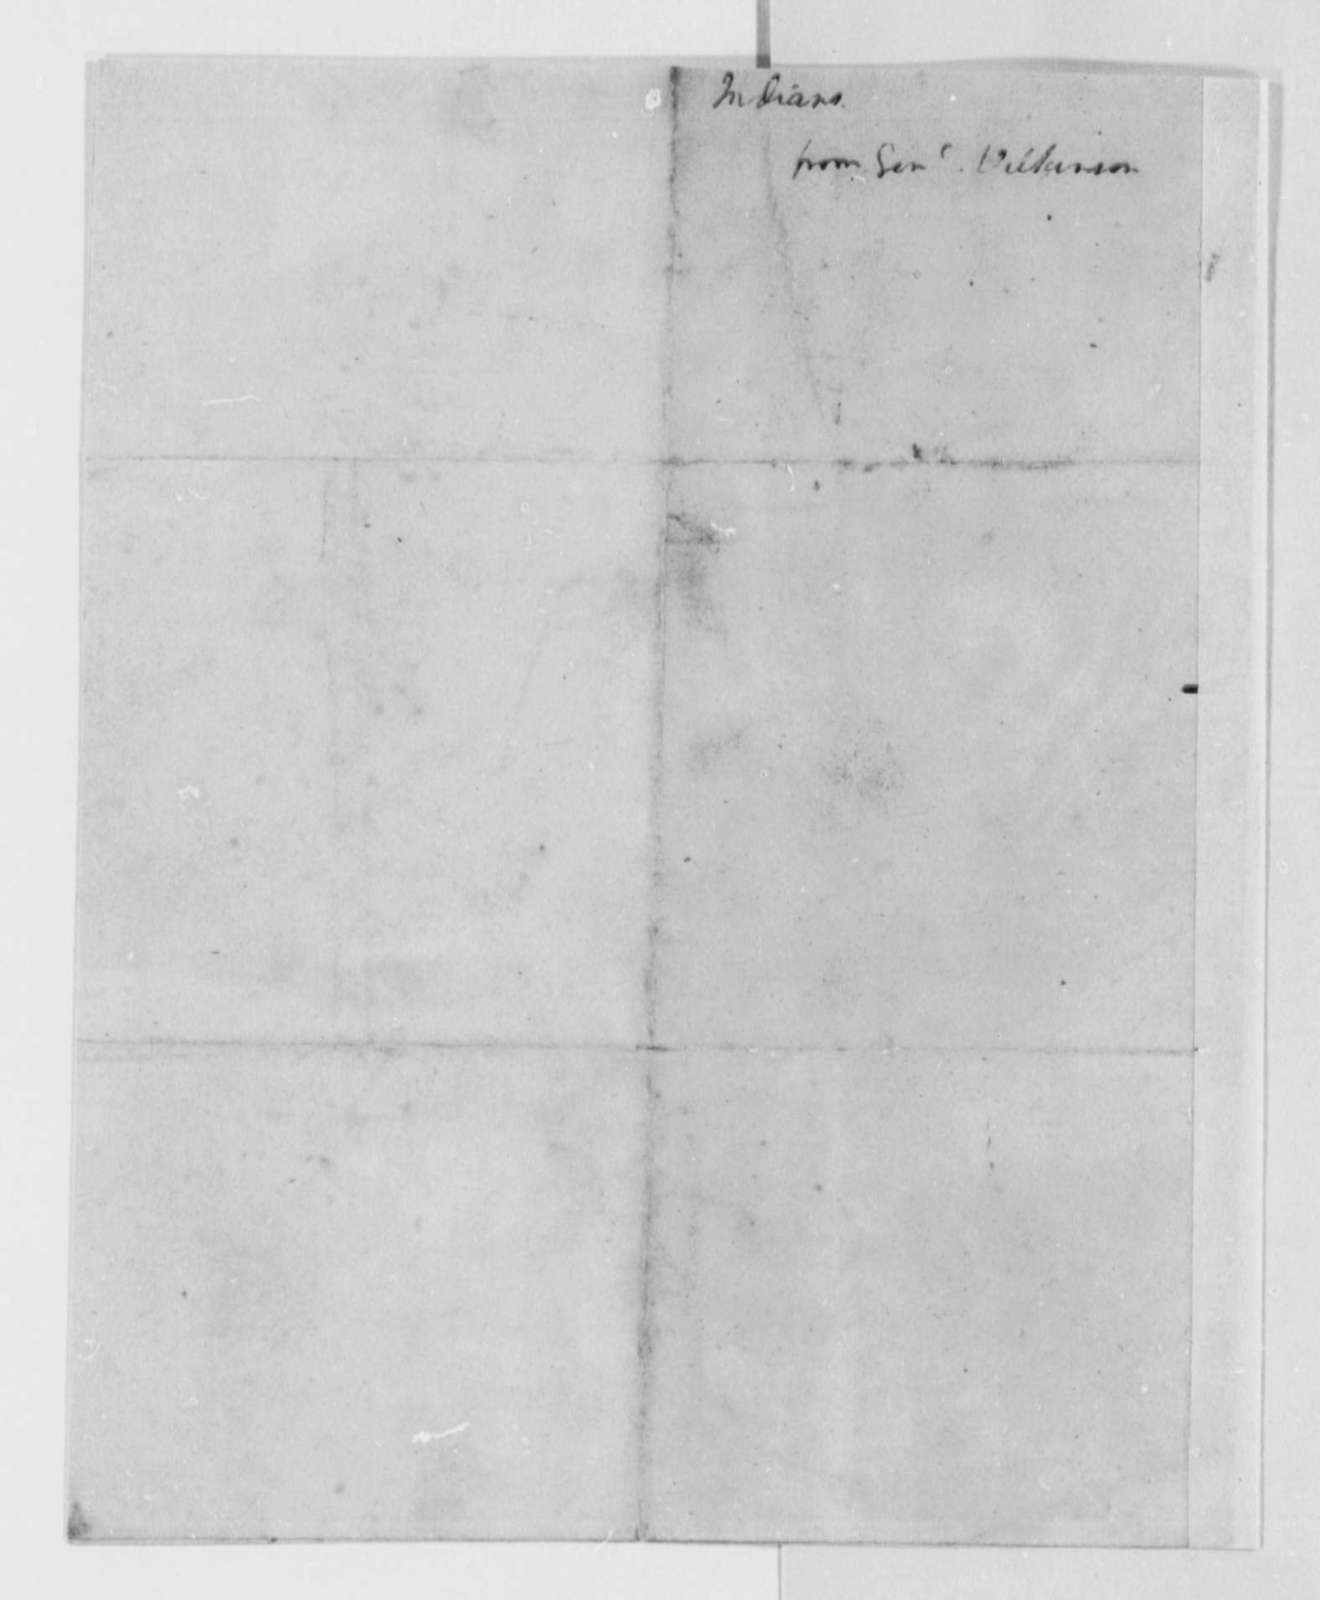 James Wilkinson, 1802, with Drawings of Indian Rock, Ohio River